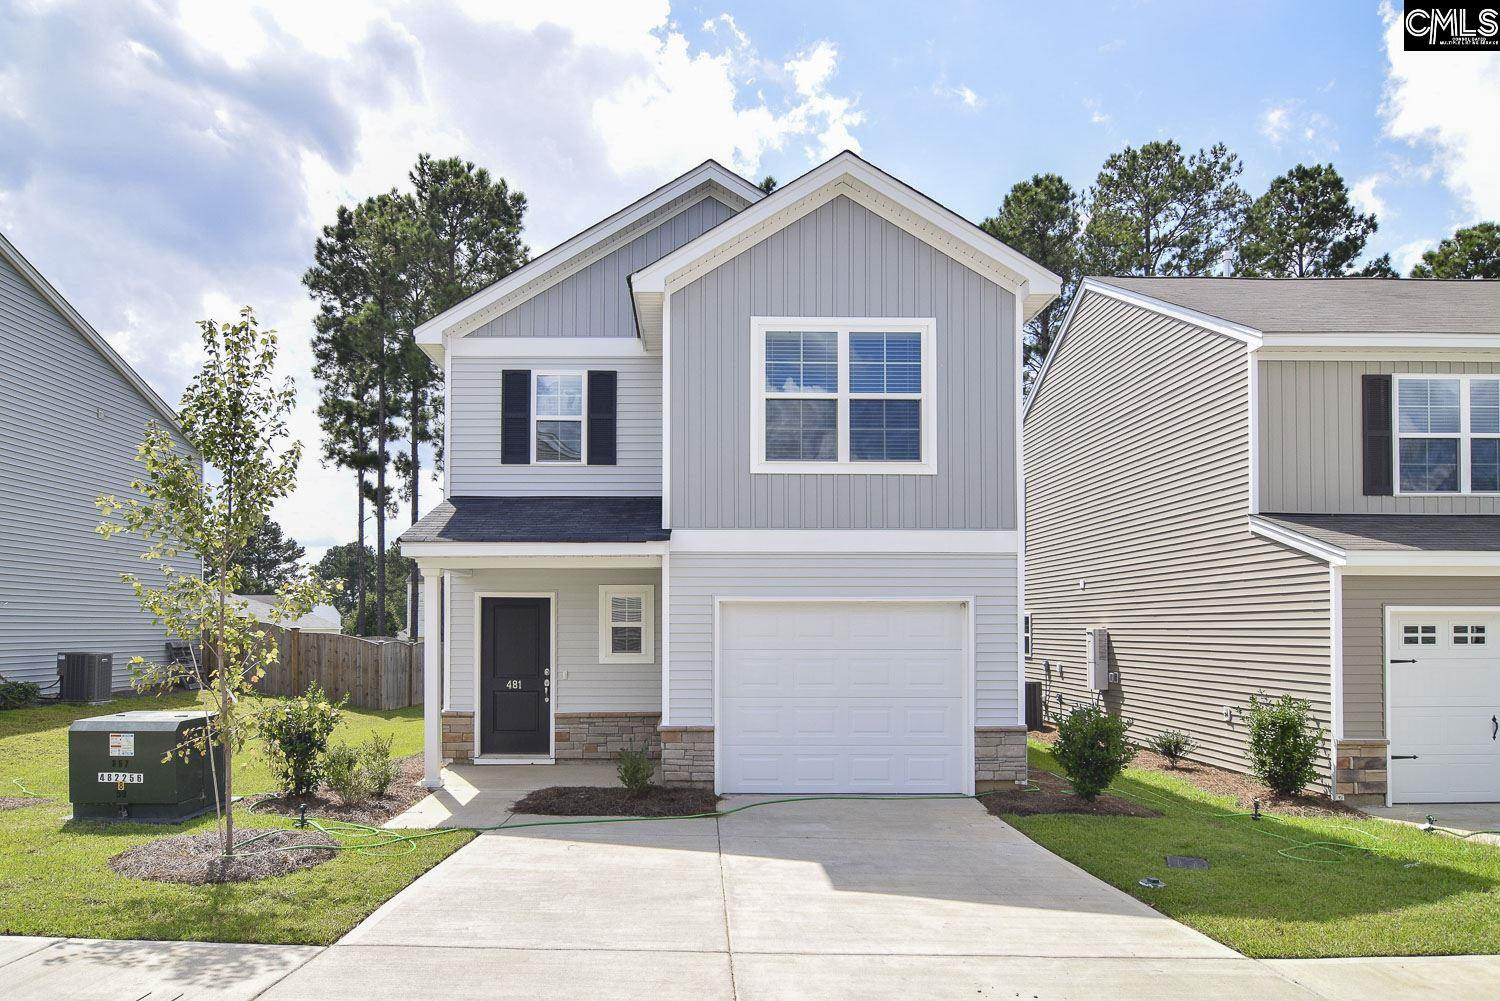 481 Eastfair Columbia, SC 29209